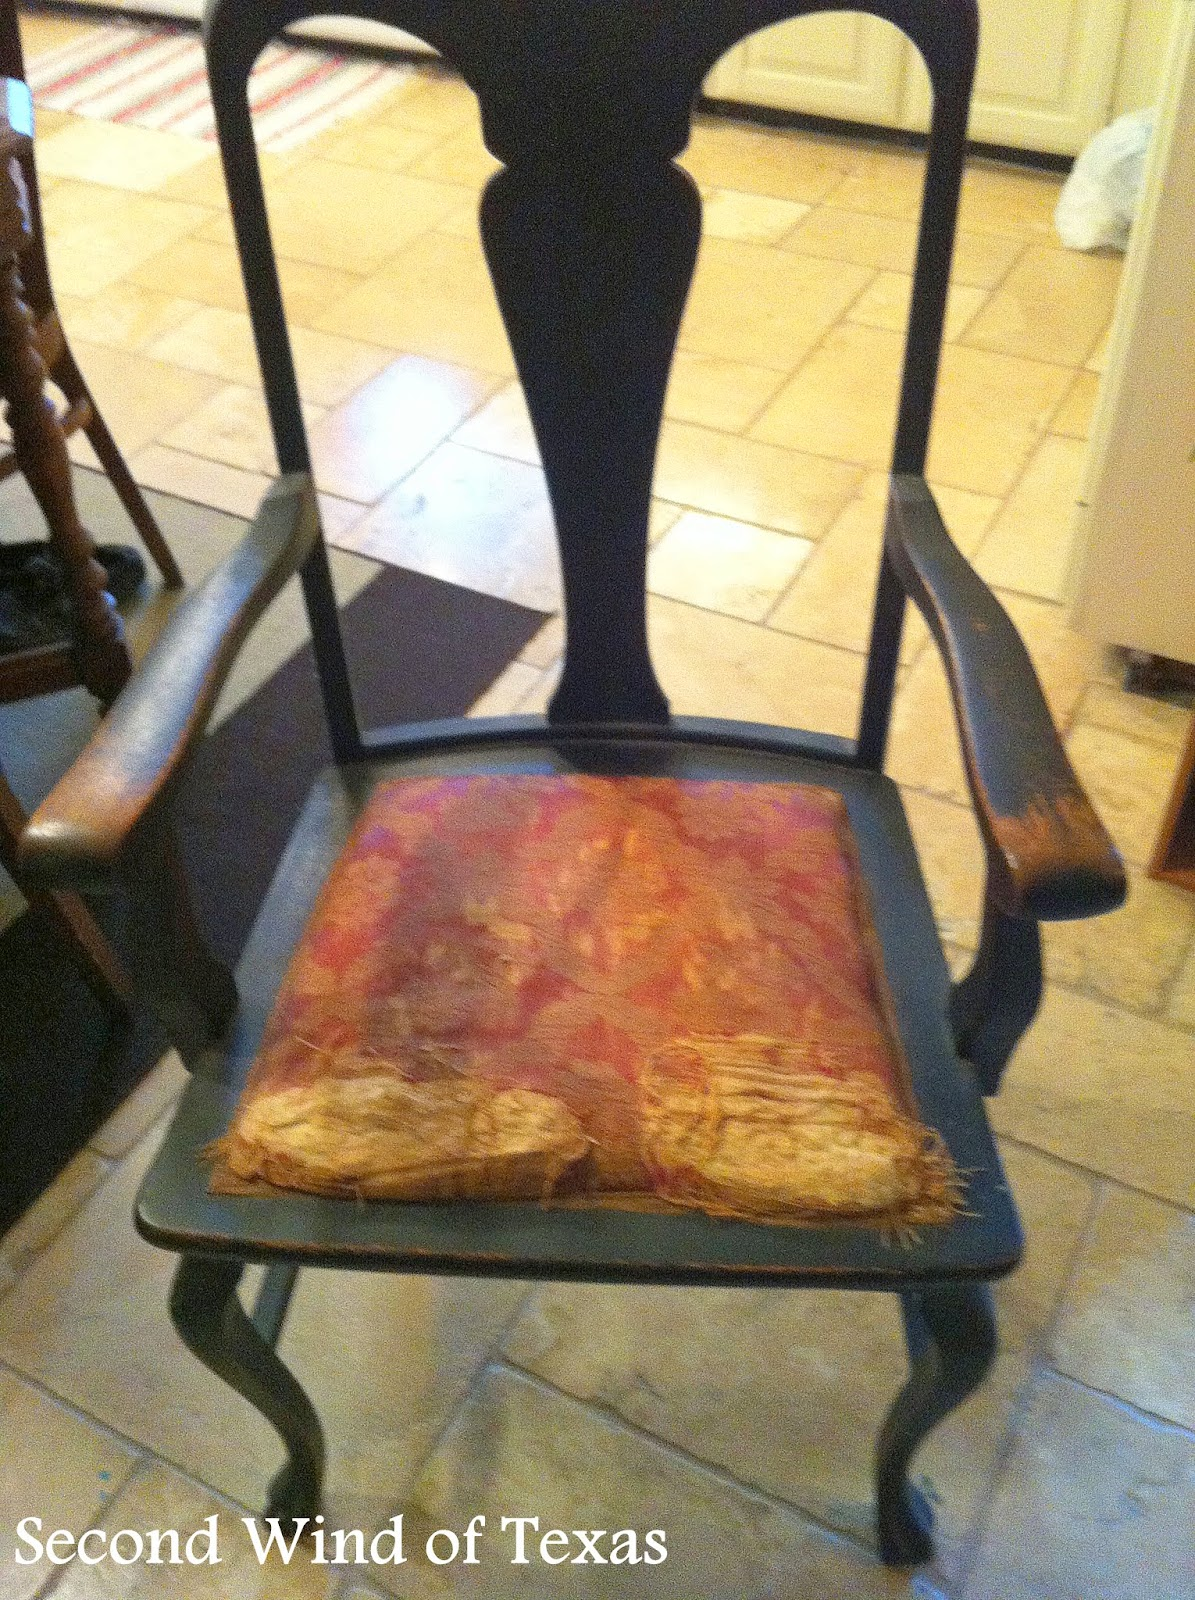 Refinishing Antique Dining Chairs (Restor-A-Finish & Stain) - Second Wind Of Texas: Refinishing Antique Dining Chairs (Restor-A